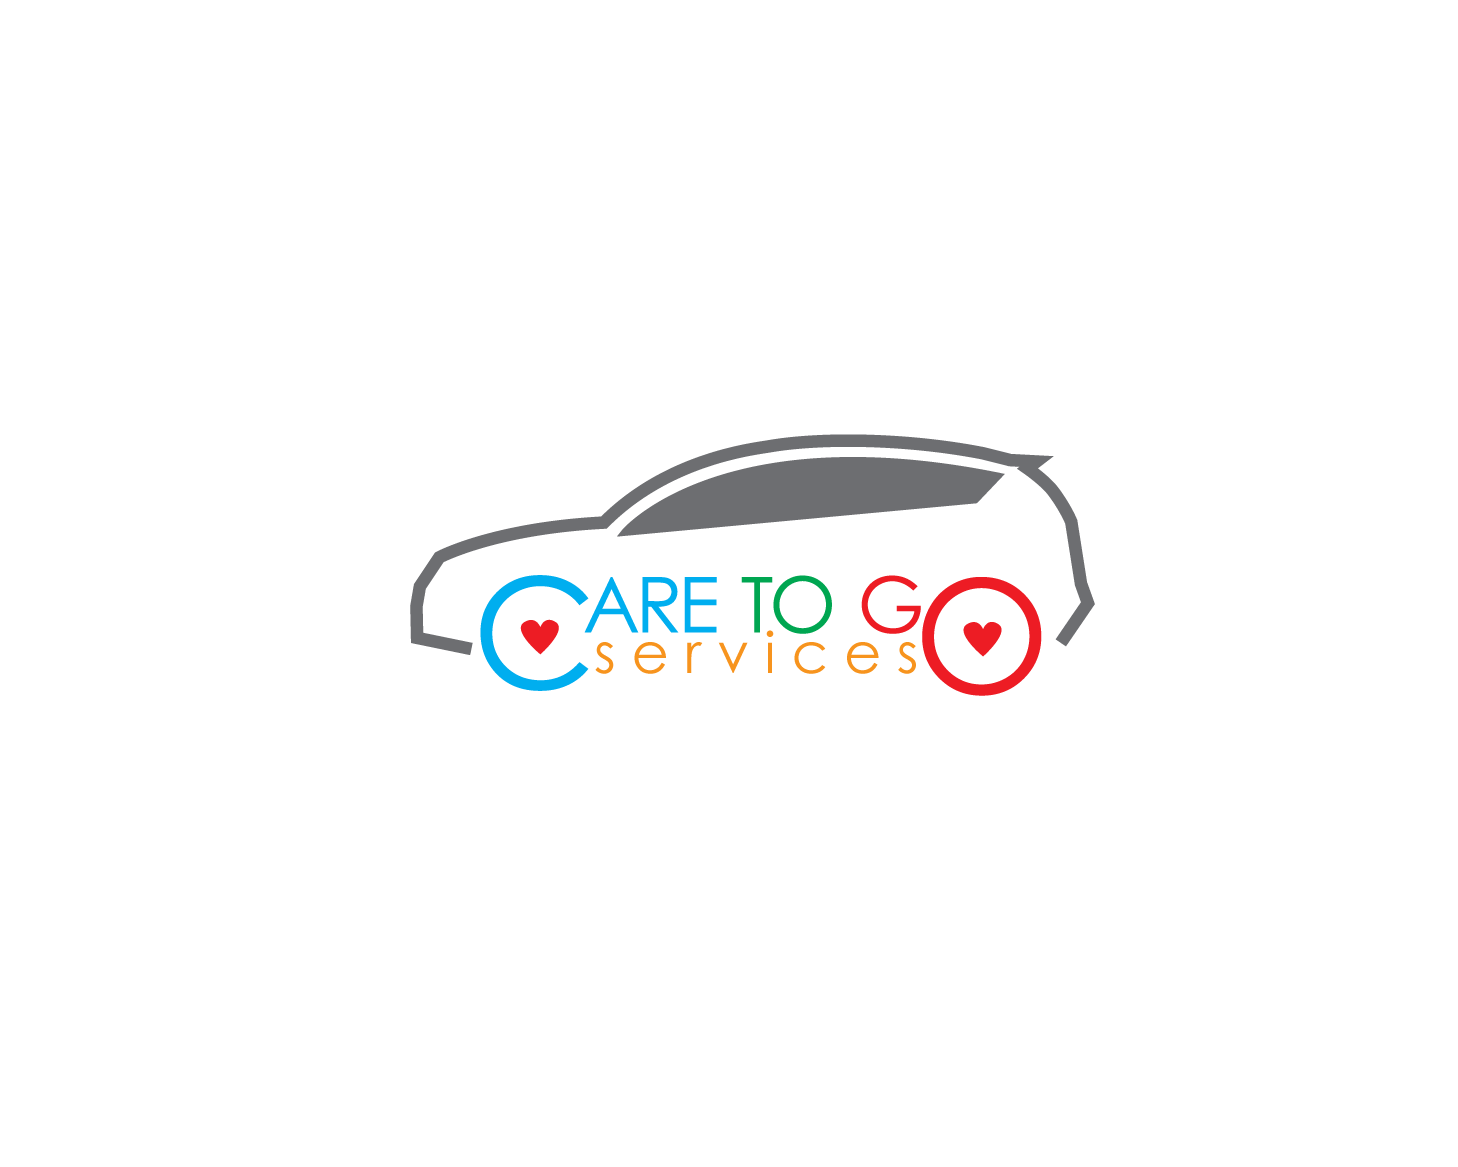 Logo Design by Roy Ferre - Entry No. 266 in the Logo Design Contest Care To Go Services.